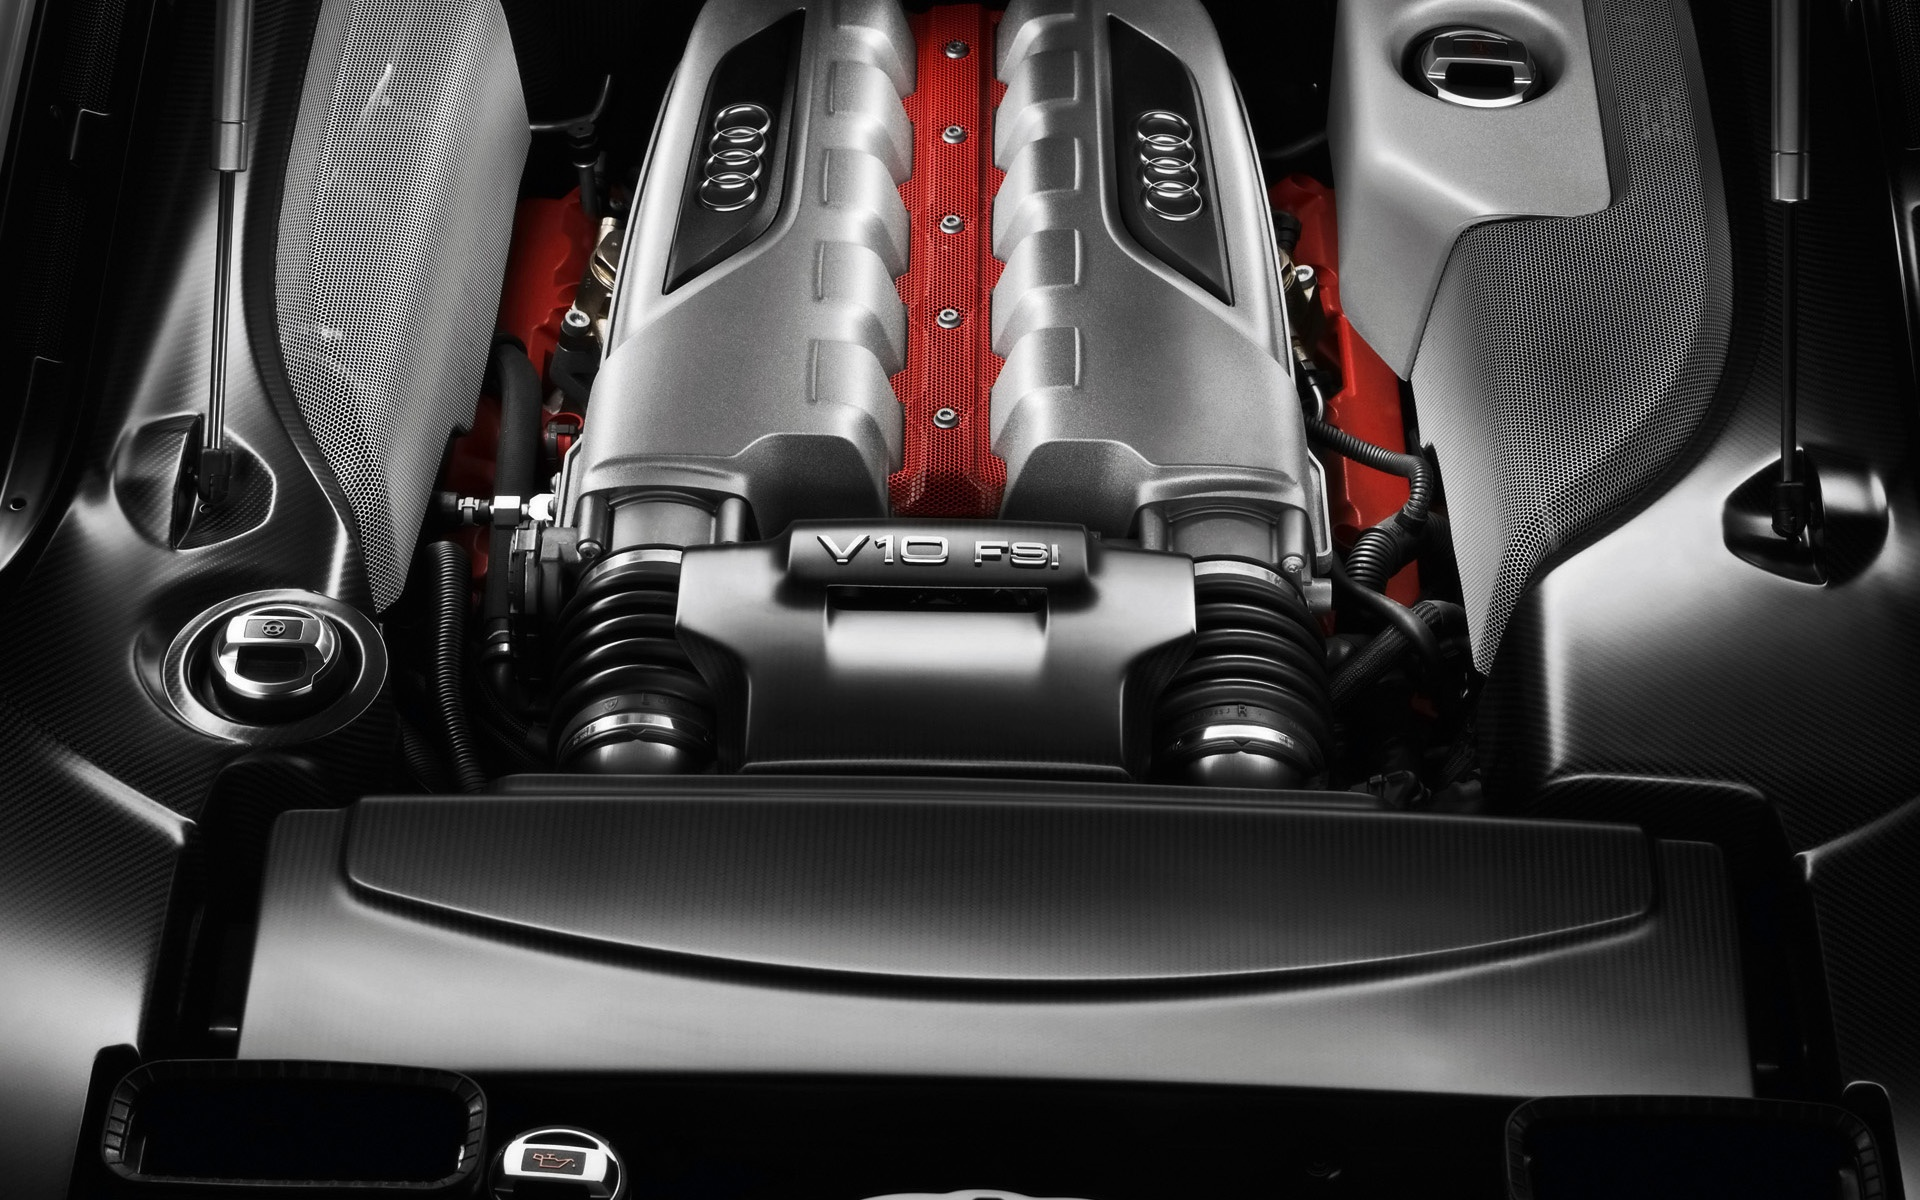 wallpapers engine car audi - photo #10